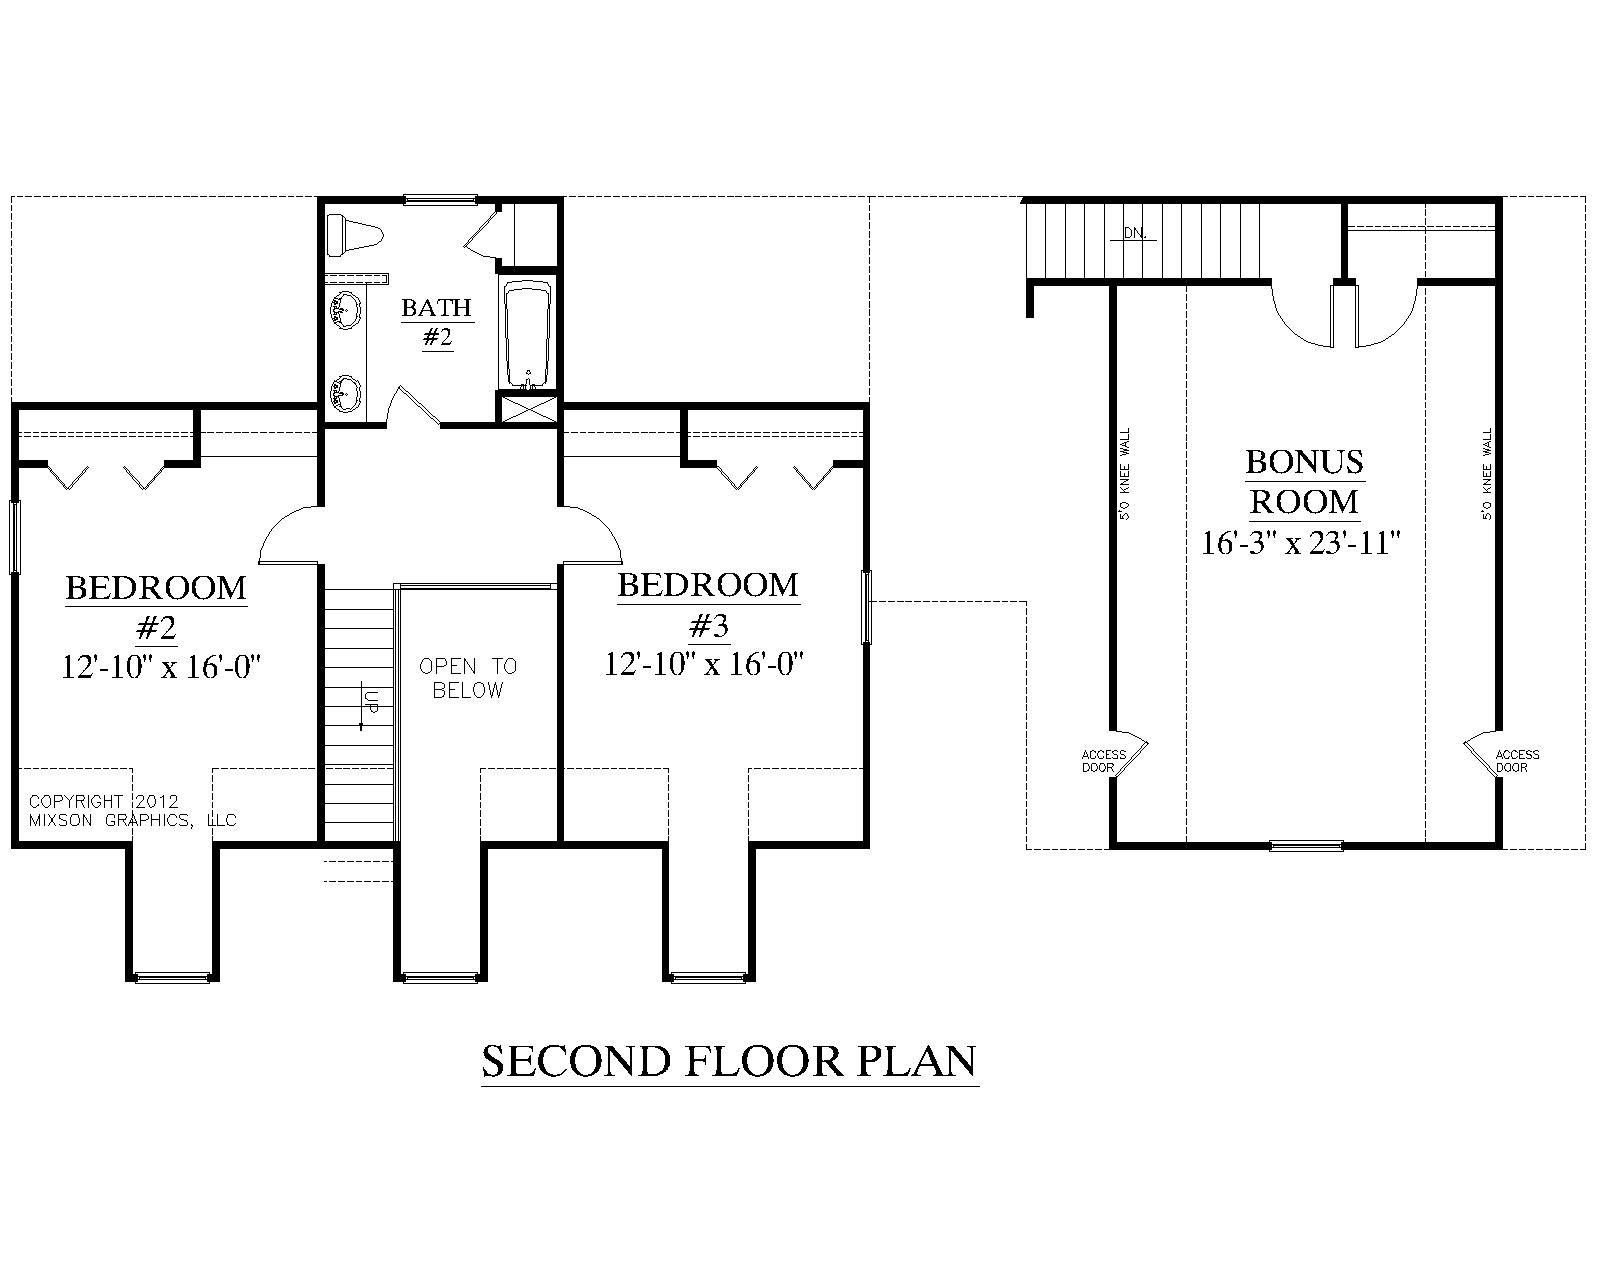 house plan 2091 b mayfield b second floor plan colonial cottage - Second Floor Floor Plans 2